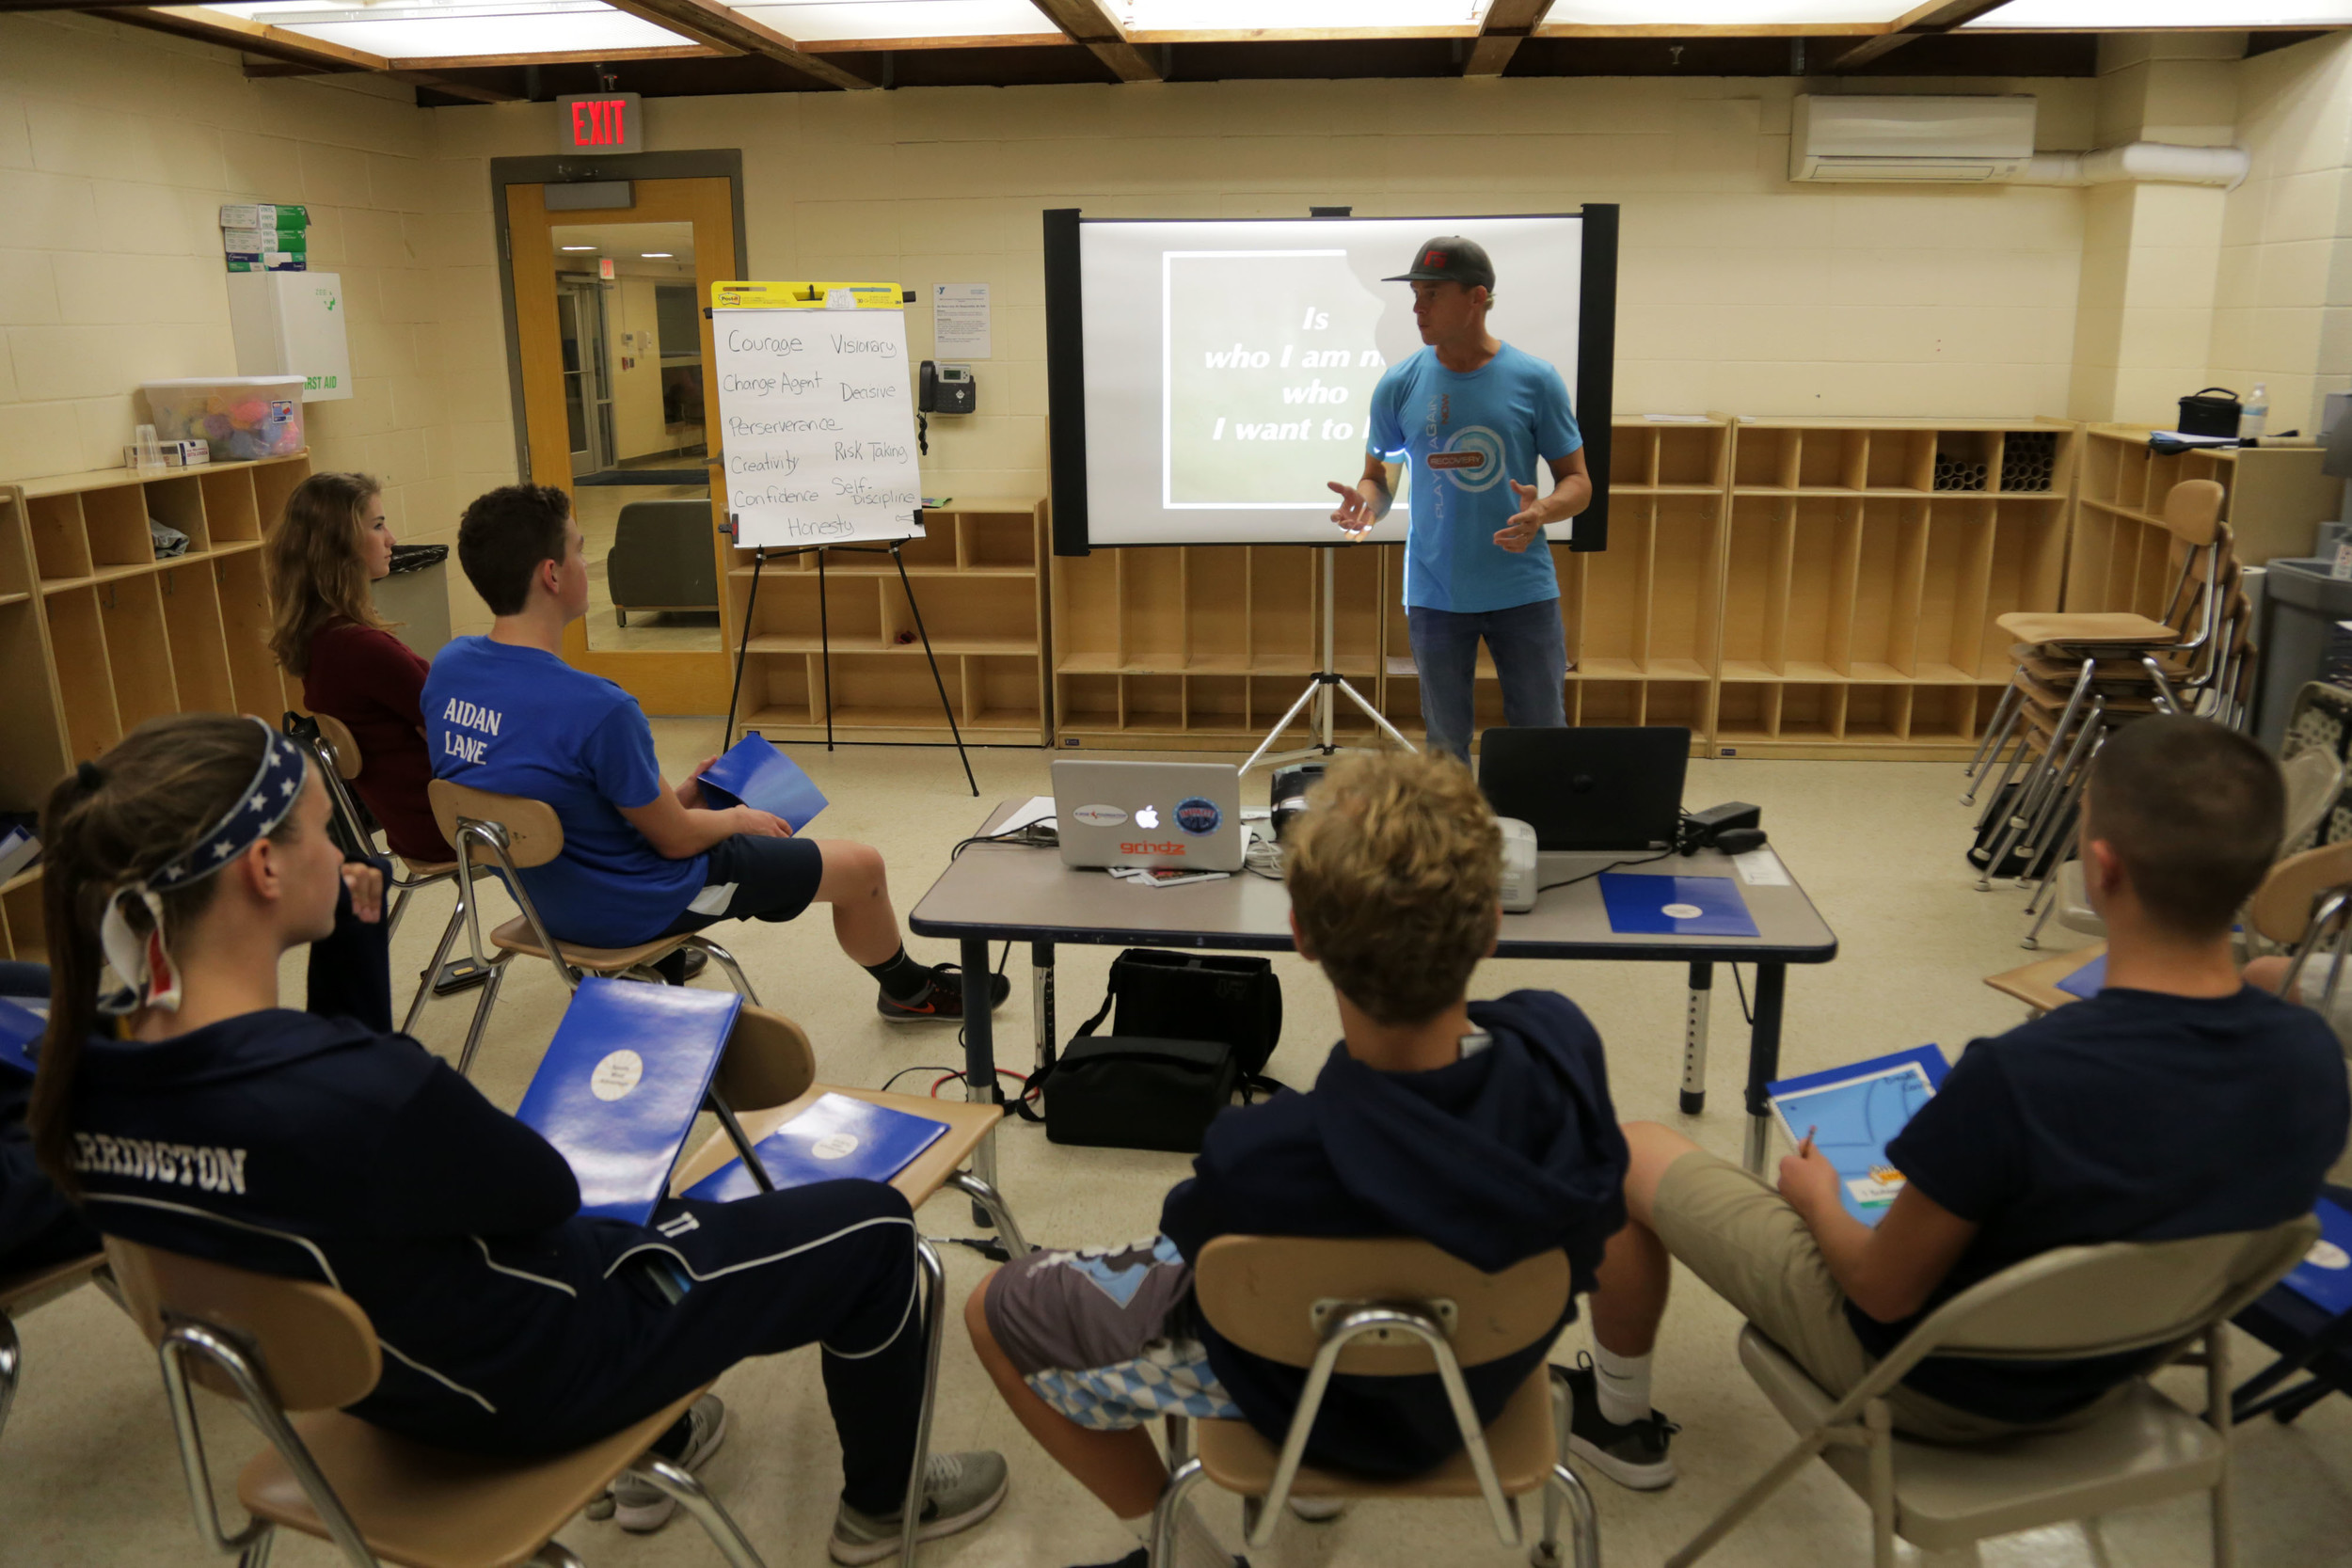 Barrington student-athletes learn more about leading | RhodyBeat